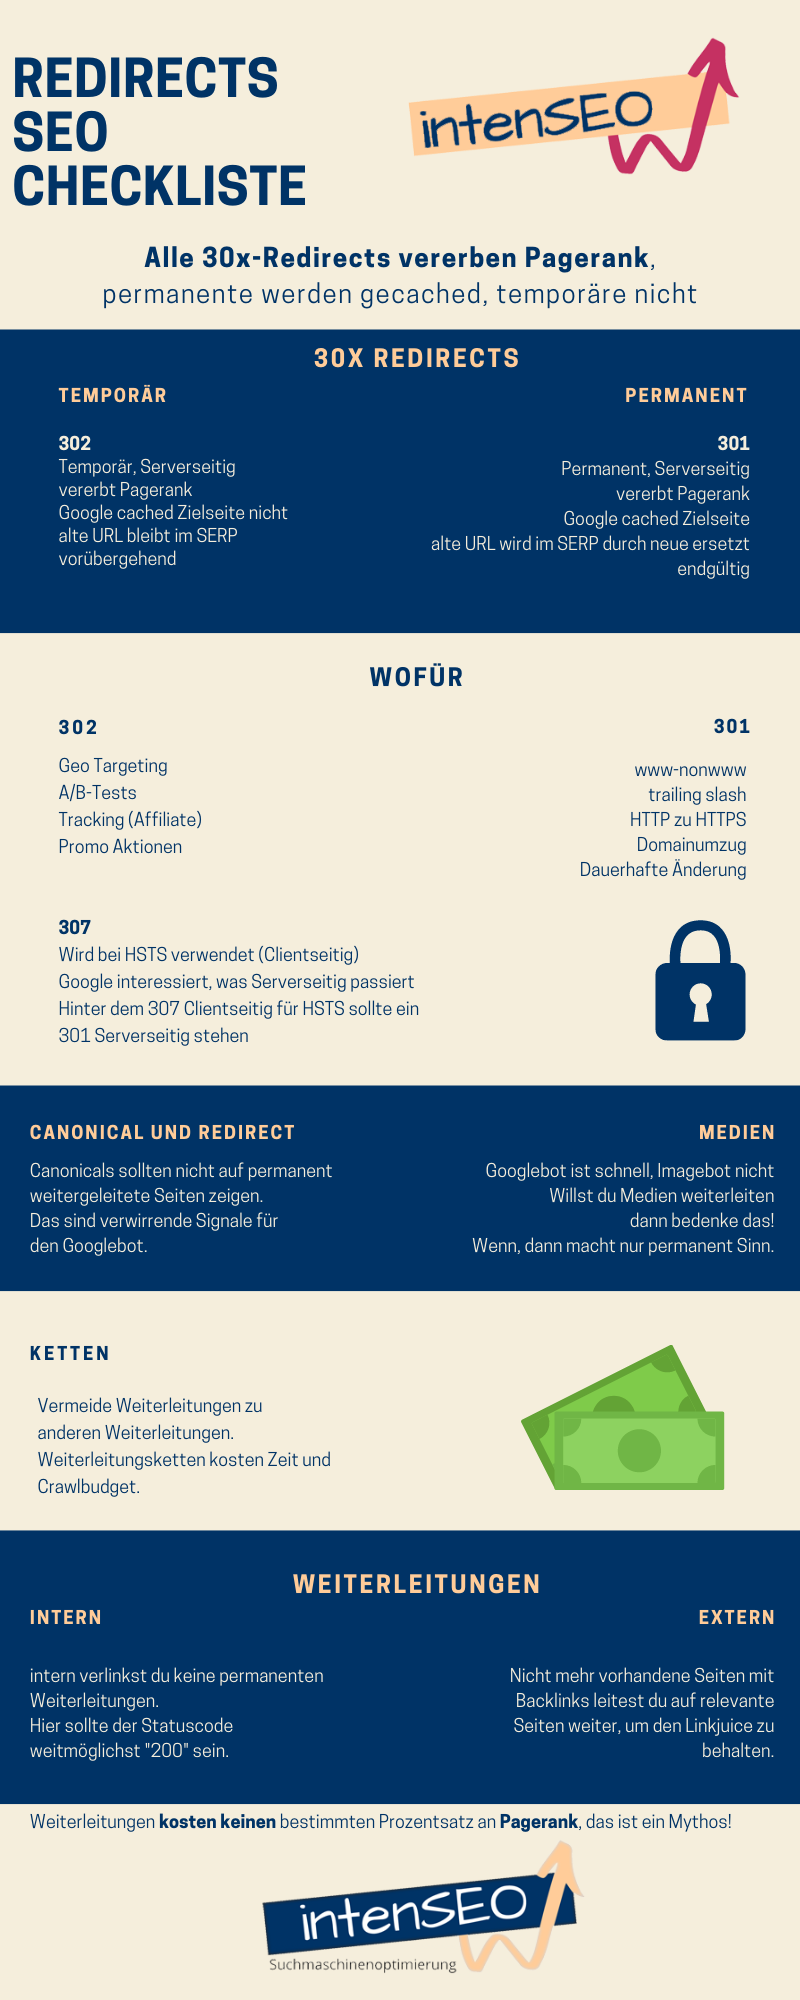 Weiterleitungen: Redirect-Checkliste-Infografik